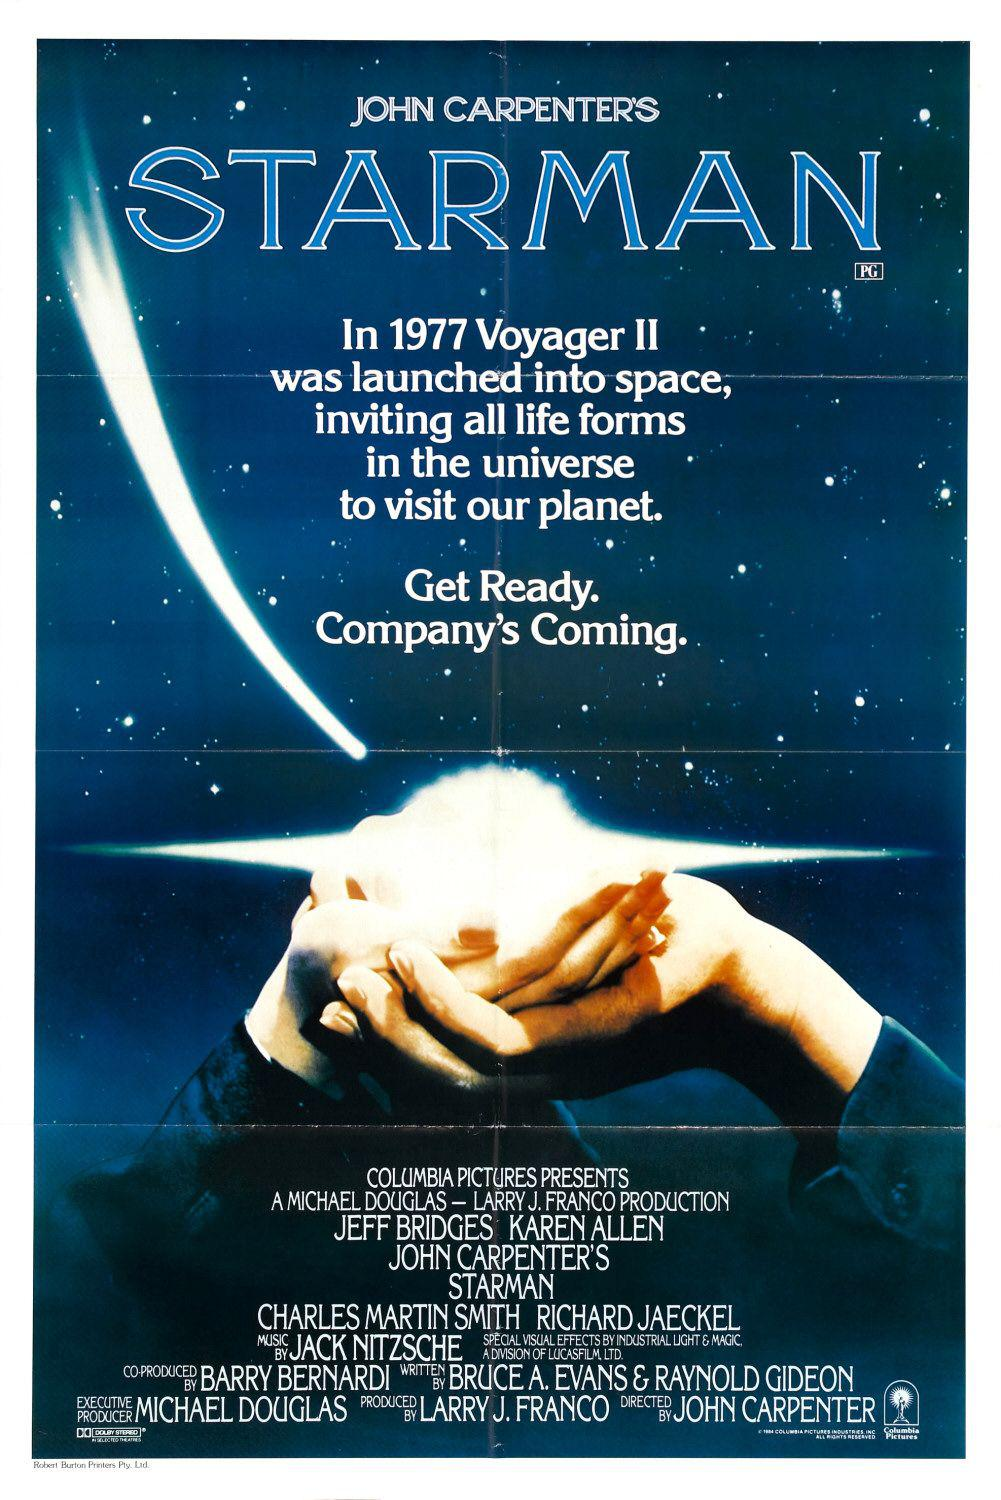 John Carpenter's film - Starman - In 1977 Voyager II was lauched into space, inviting all life forms in the universe to visit our planet. Get ready. Company's coming. - Jeff Bridge - Karen Allen - Charles Martin Smith - Richard Jaeckel - 80s classic culti scifi film poster